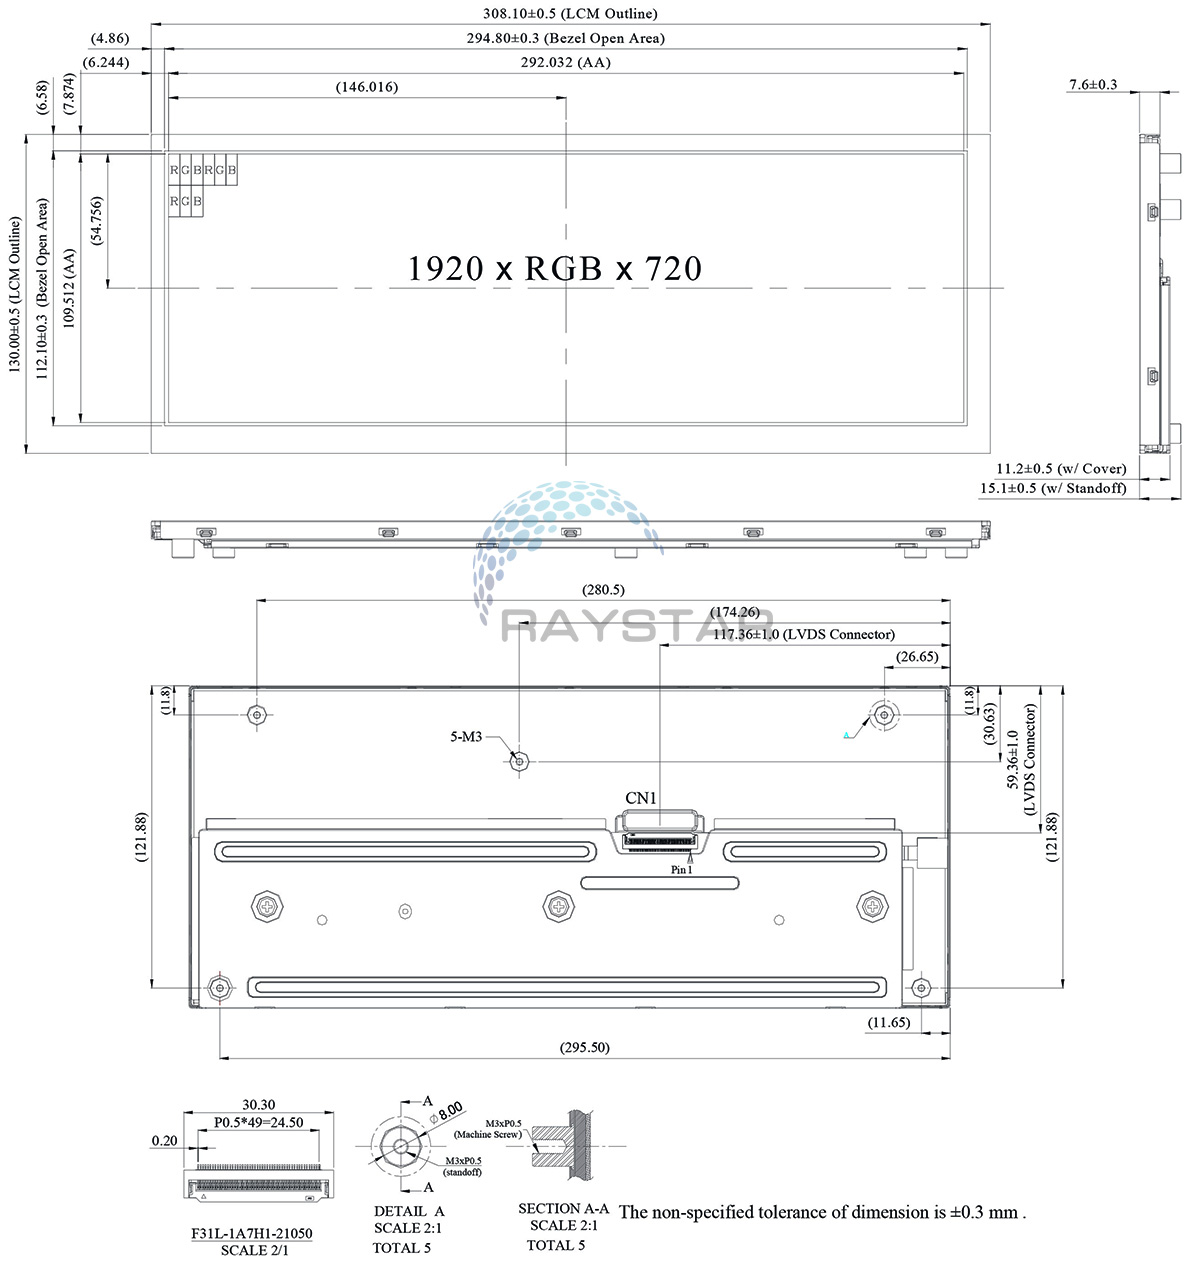 1920x720 Display, 1920x720 LCD 12.3, IPS, LVDS, High Brightness, Wide Temperature TFT